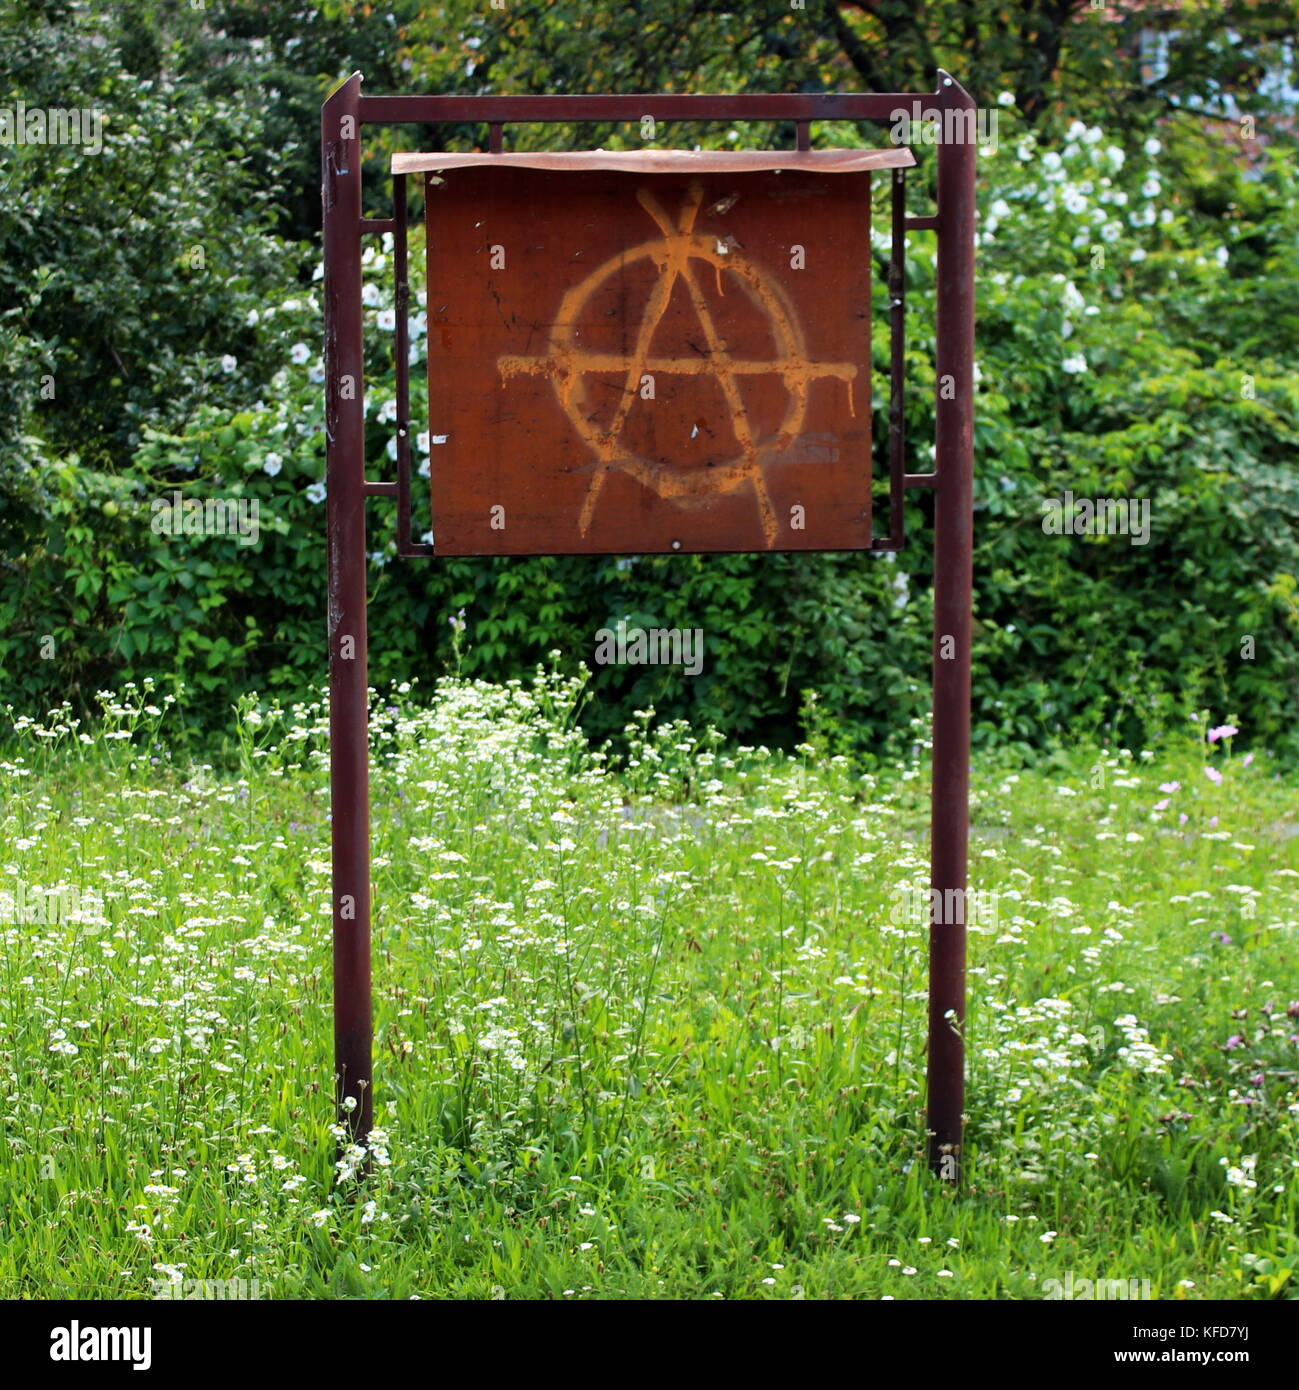 Anarchy graffiti painted on an old brown metal notice board (metal place for local for announcements) surrounded - Stock Image